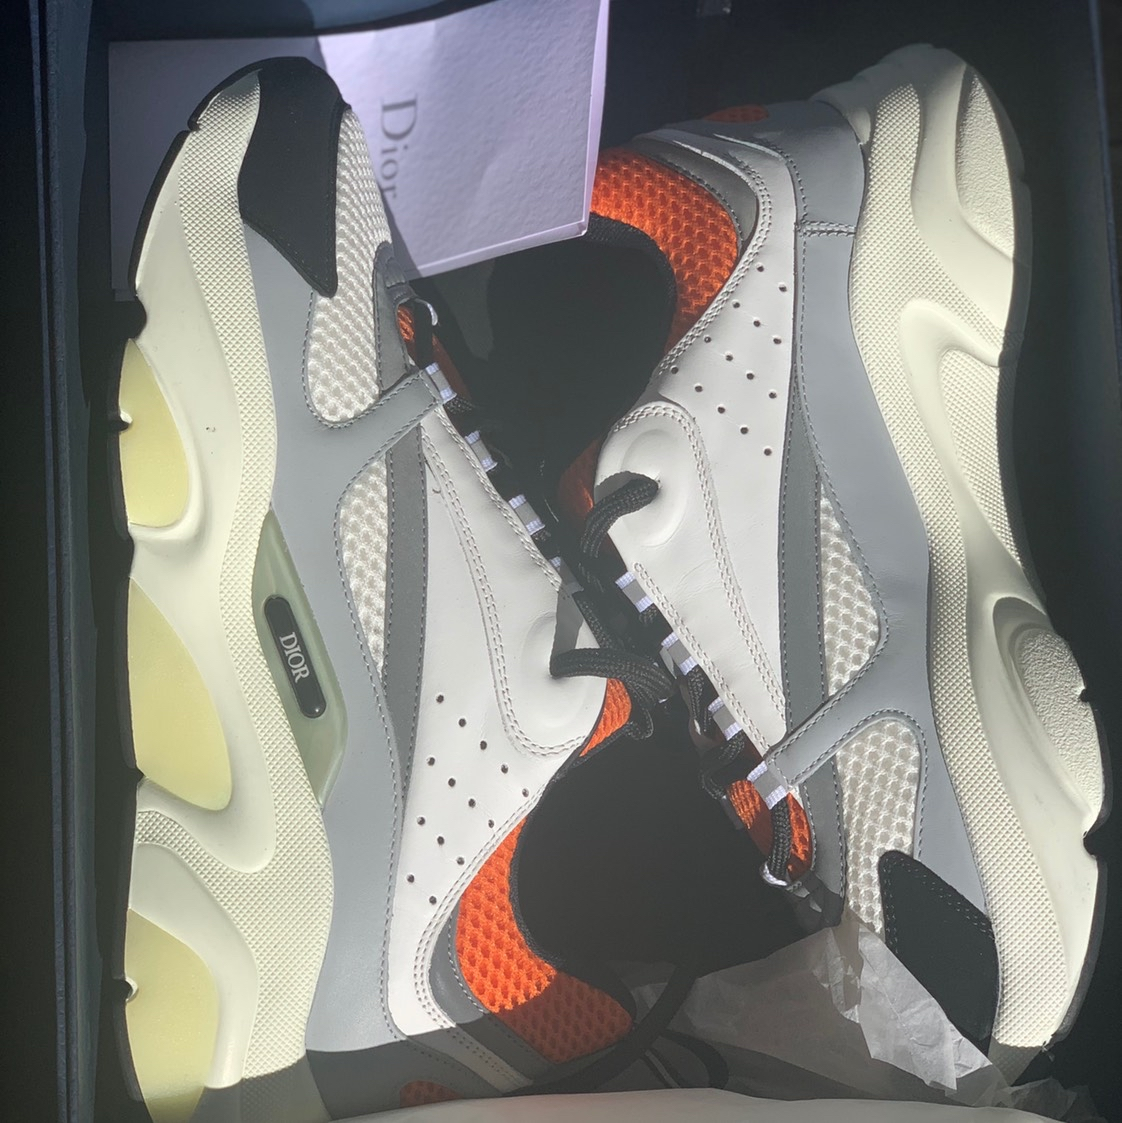 Dior b22 sneaker size 41 with receipt Dior0